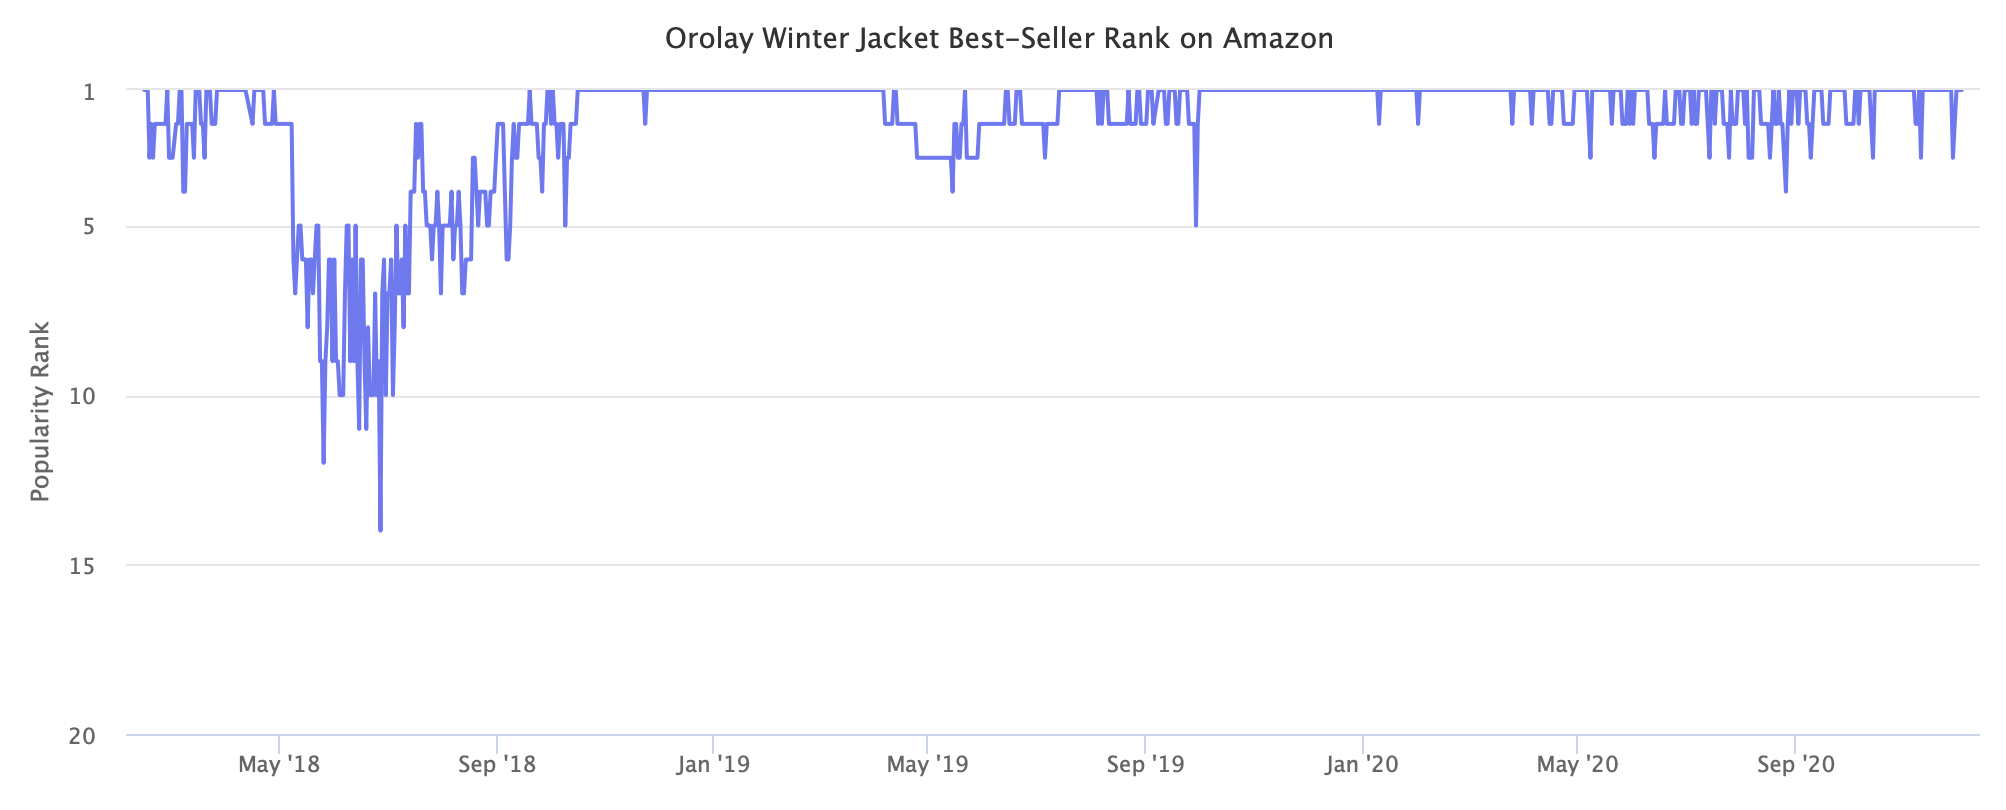 Orolay Winter Jacket Best-Seller Rank on Amazon